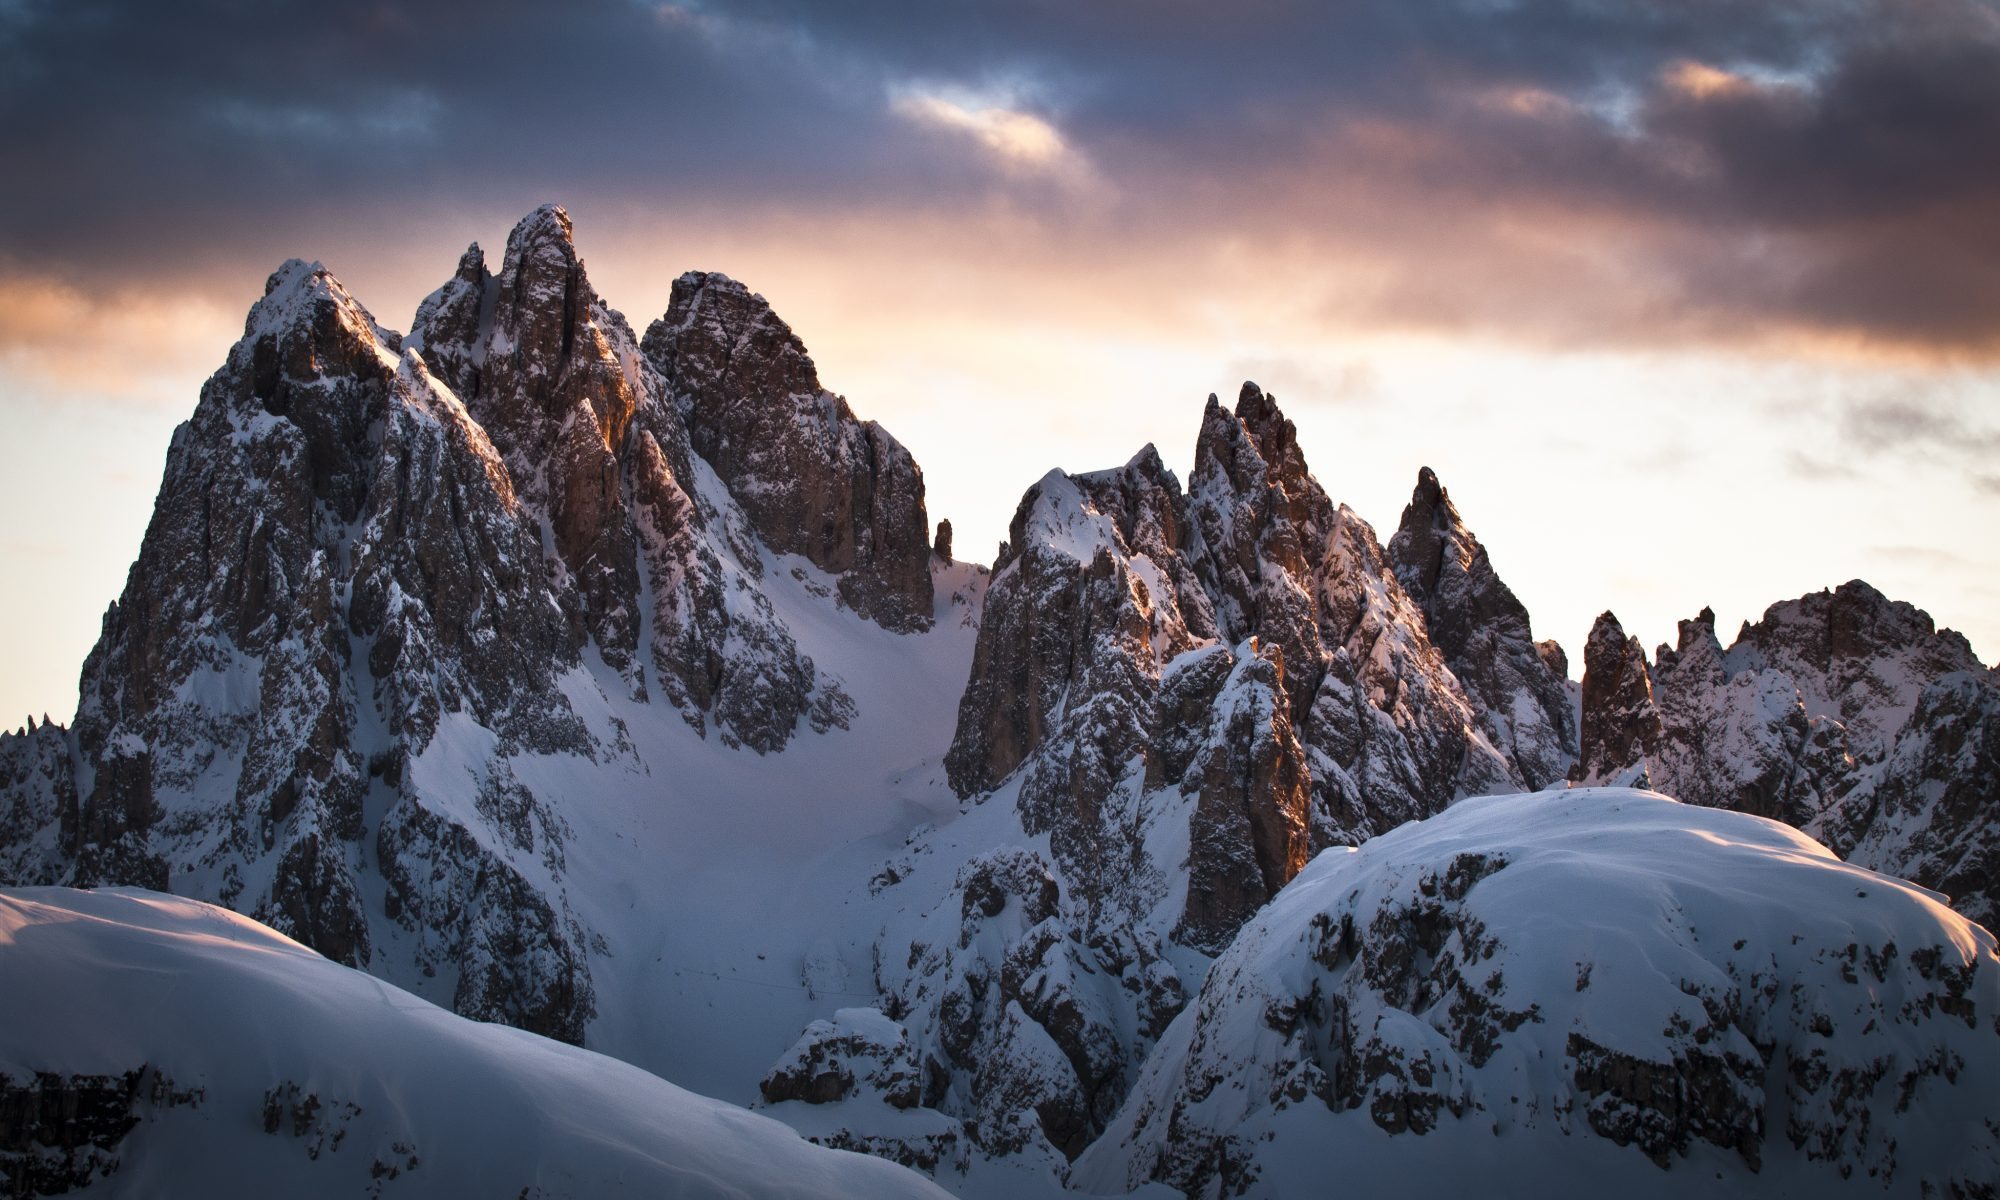 The-Ski-Guru Travel takes you to a Long Ski Safari in the Dolomites. Photo: Giuseppe Ghedina.